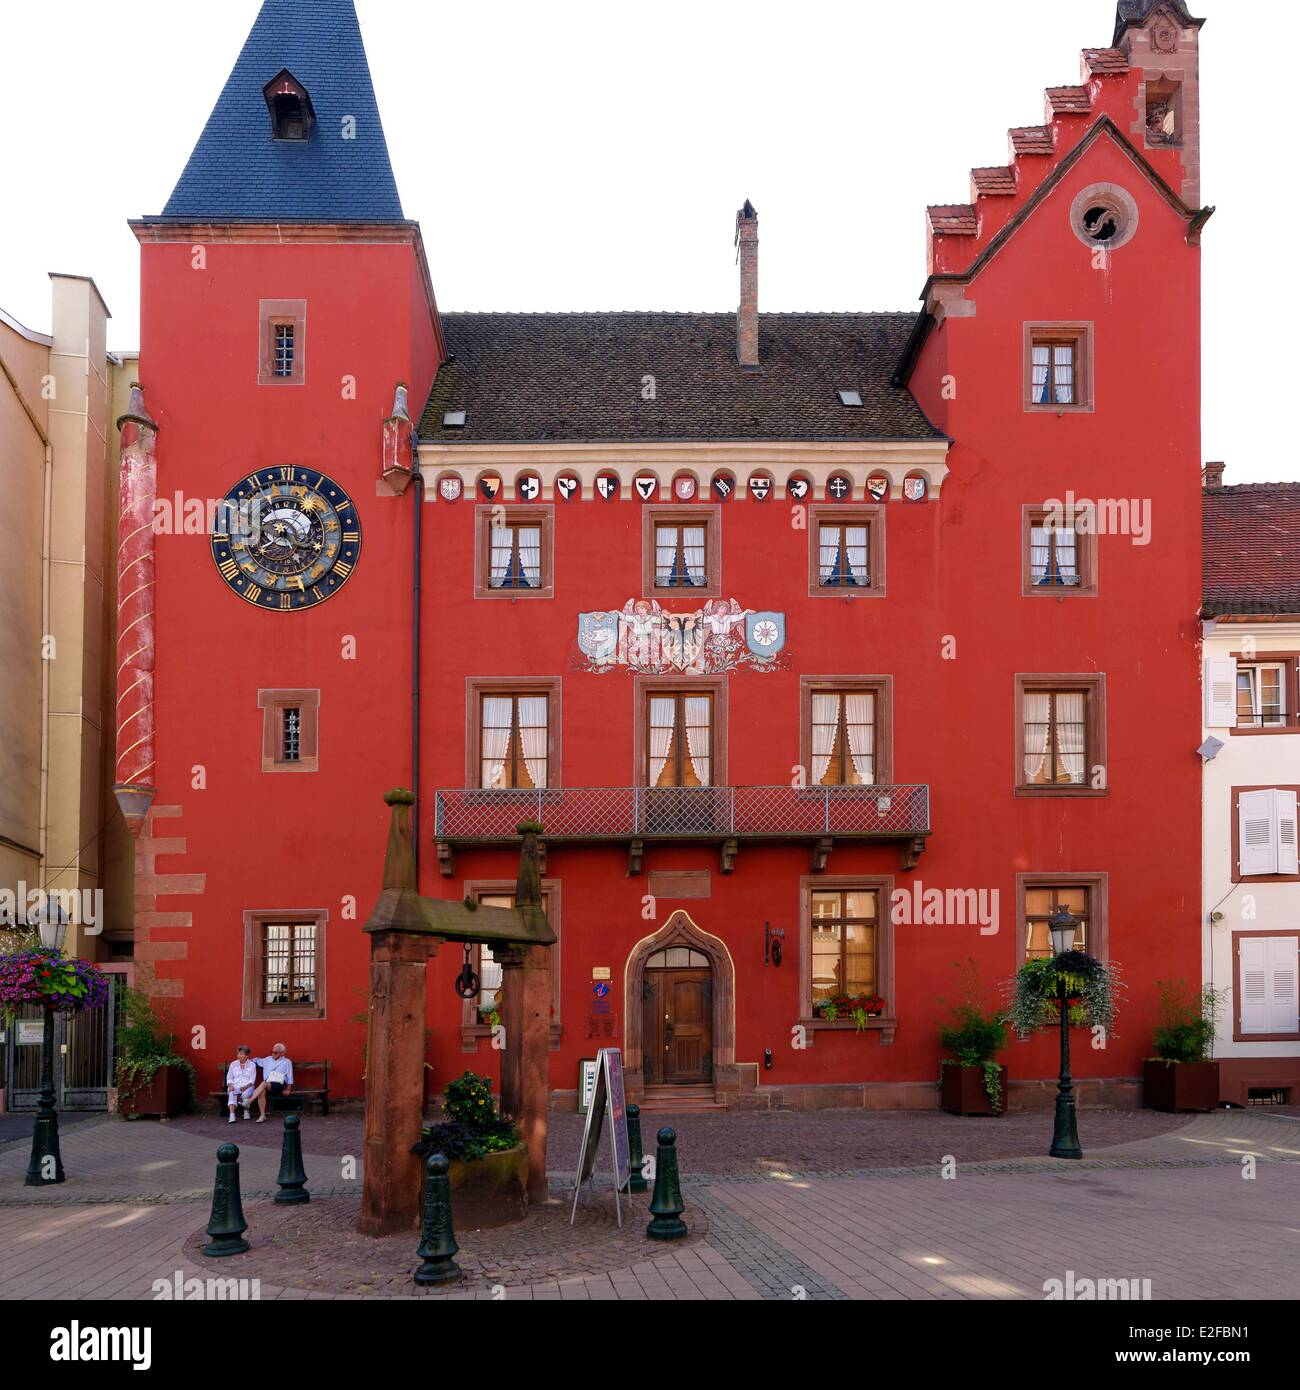 France, Bas Rhin, Haguenau, the Alsatian museum, old Chancellery with an astronomical clock on the frontage Stock Photo